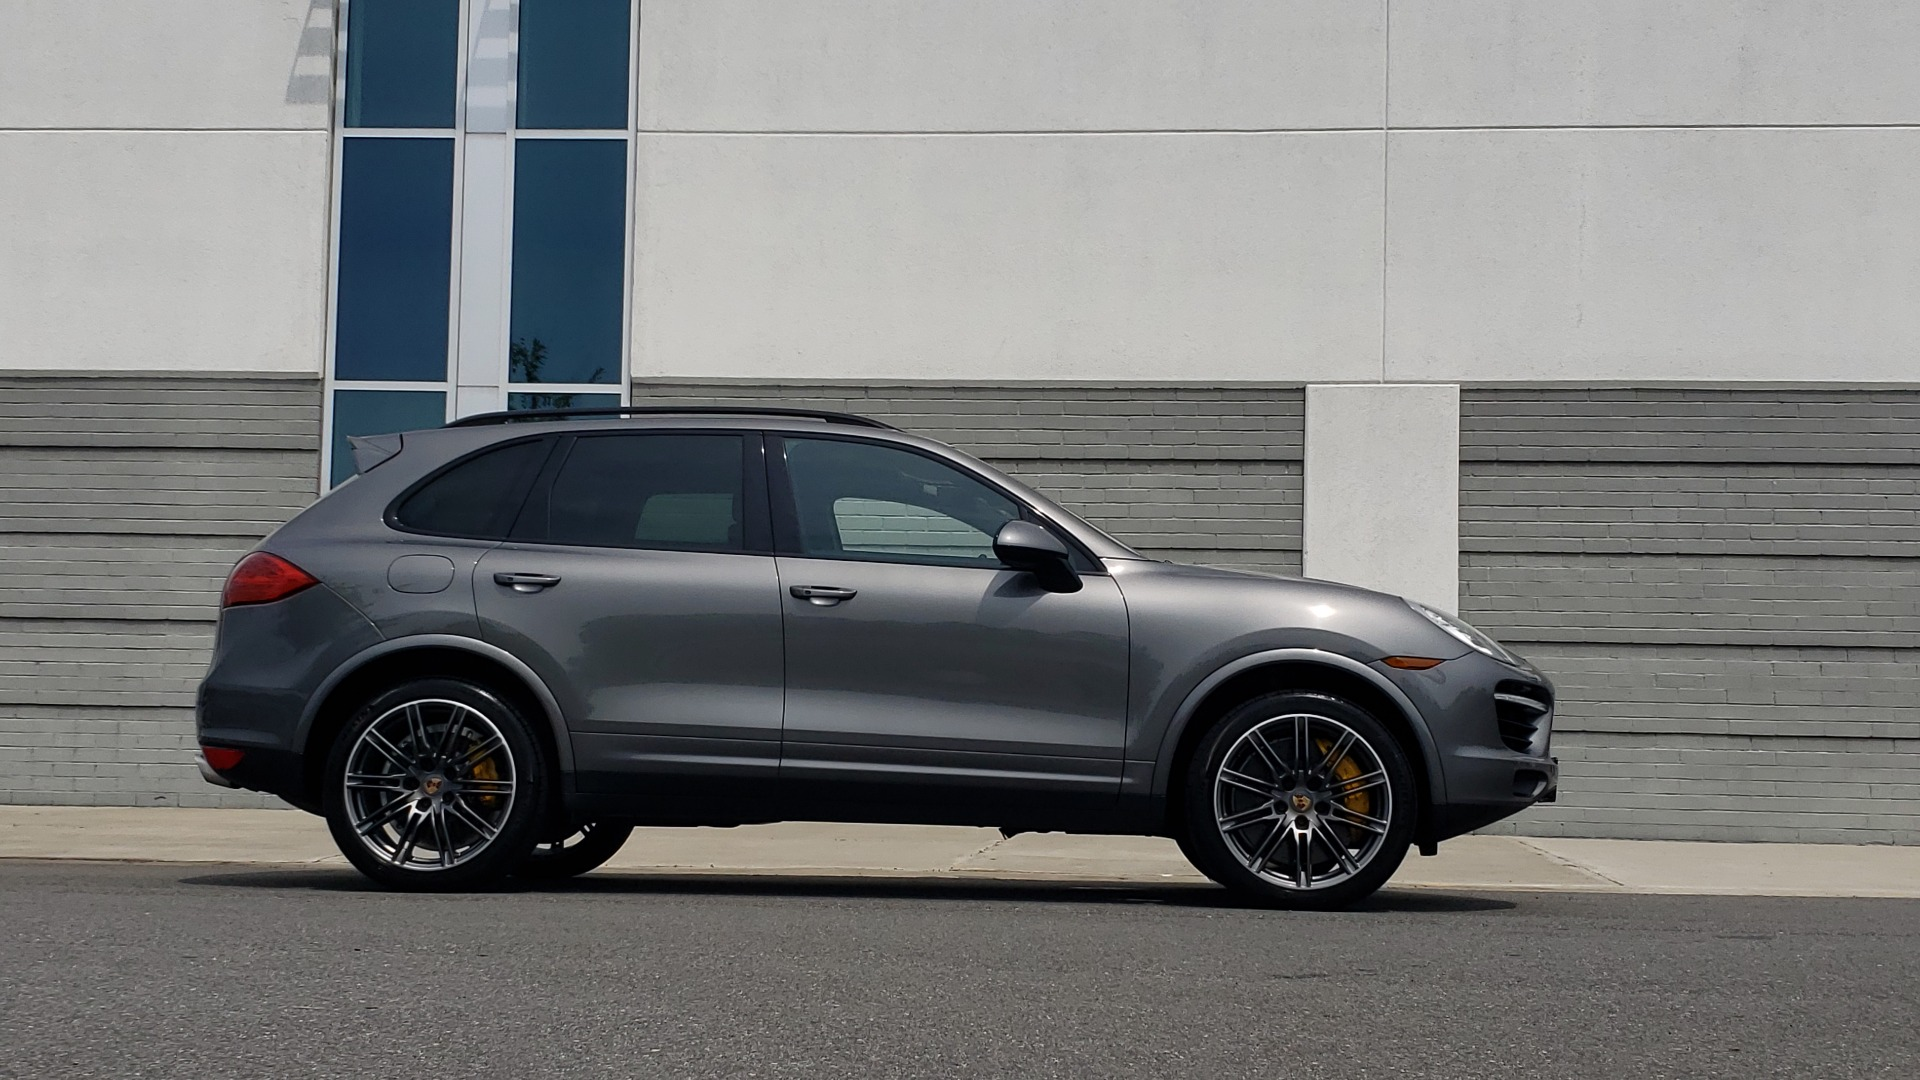 Used 2014 Porsche CAYENNE TURBO S / AWD / NAV / BOSE / PANO-ROOF / LCA / REARVIEW for sale Sold at Formula Imports in Charlotte NC 28227 9